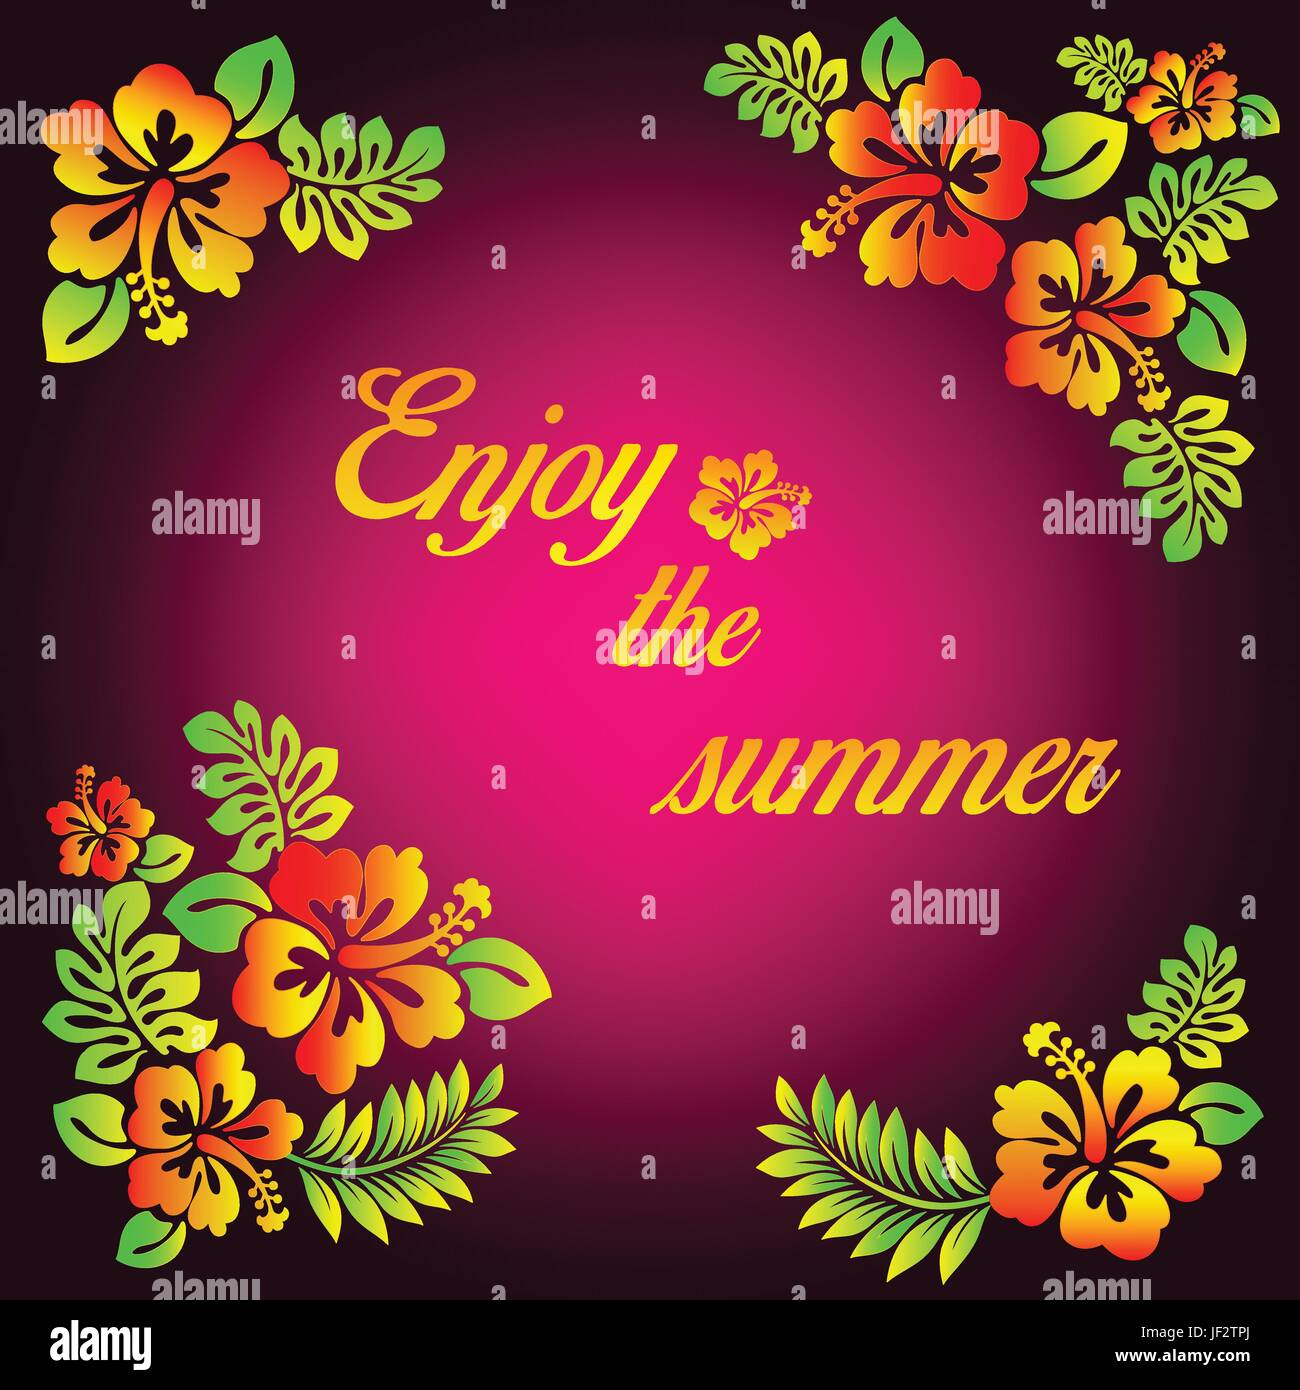 flower, plant, summer, summerly, party, celebration, hibiscus, happiness, pink, - Stock Vector